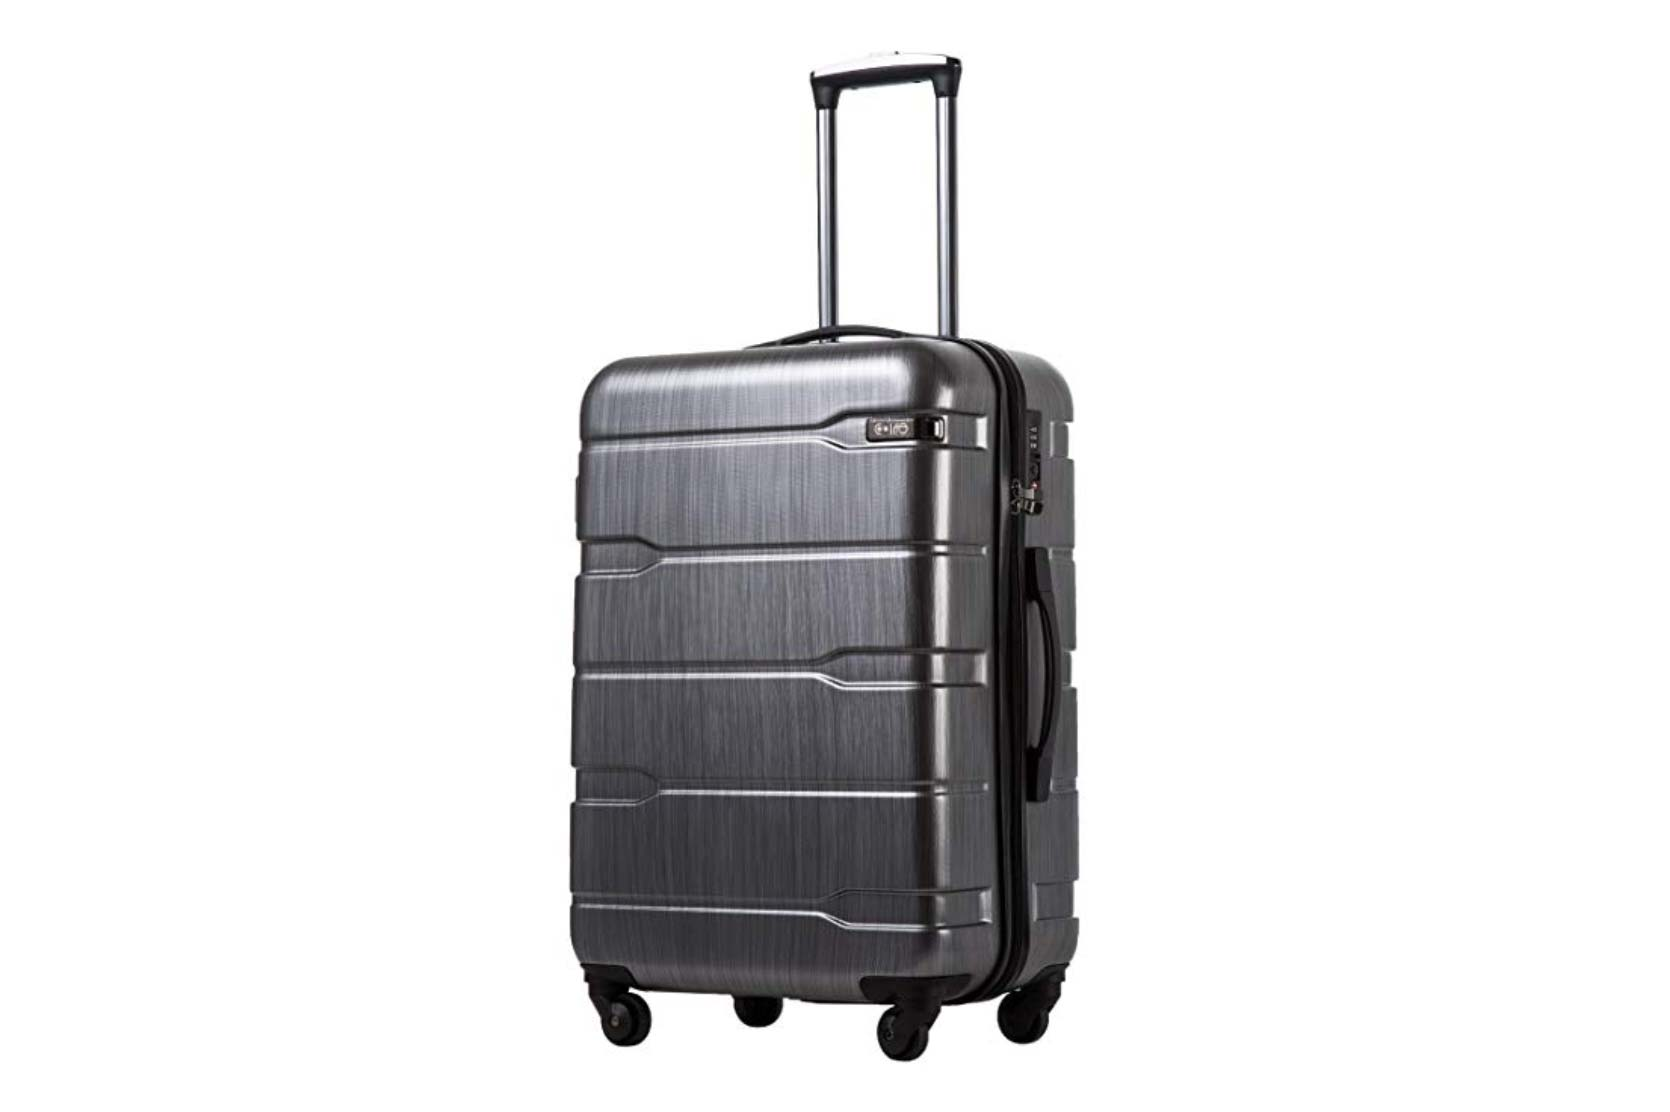 COOLIFE Luggage Expandable Suitcase Carry-On